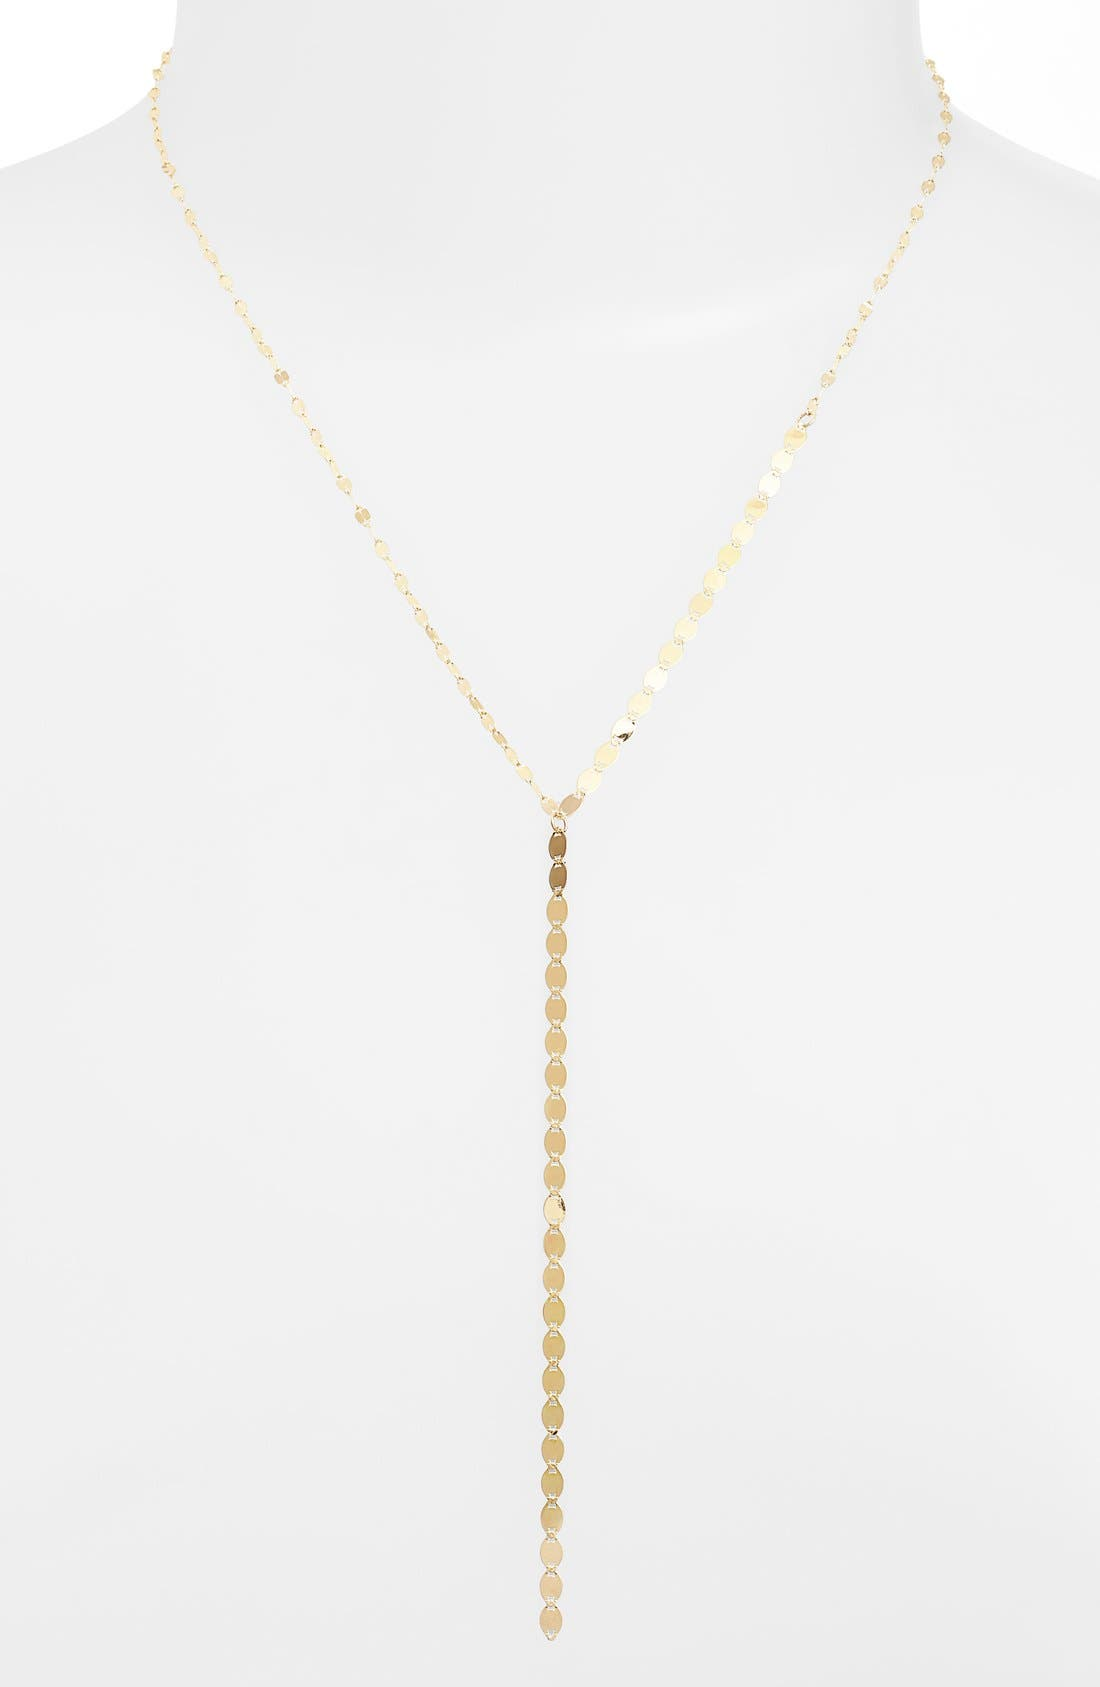 'Nude' Y-Necklace,                         Main,                         color, YELLOW GOLD